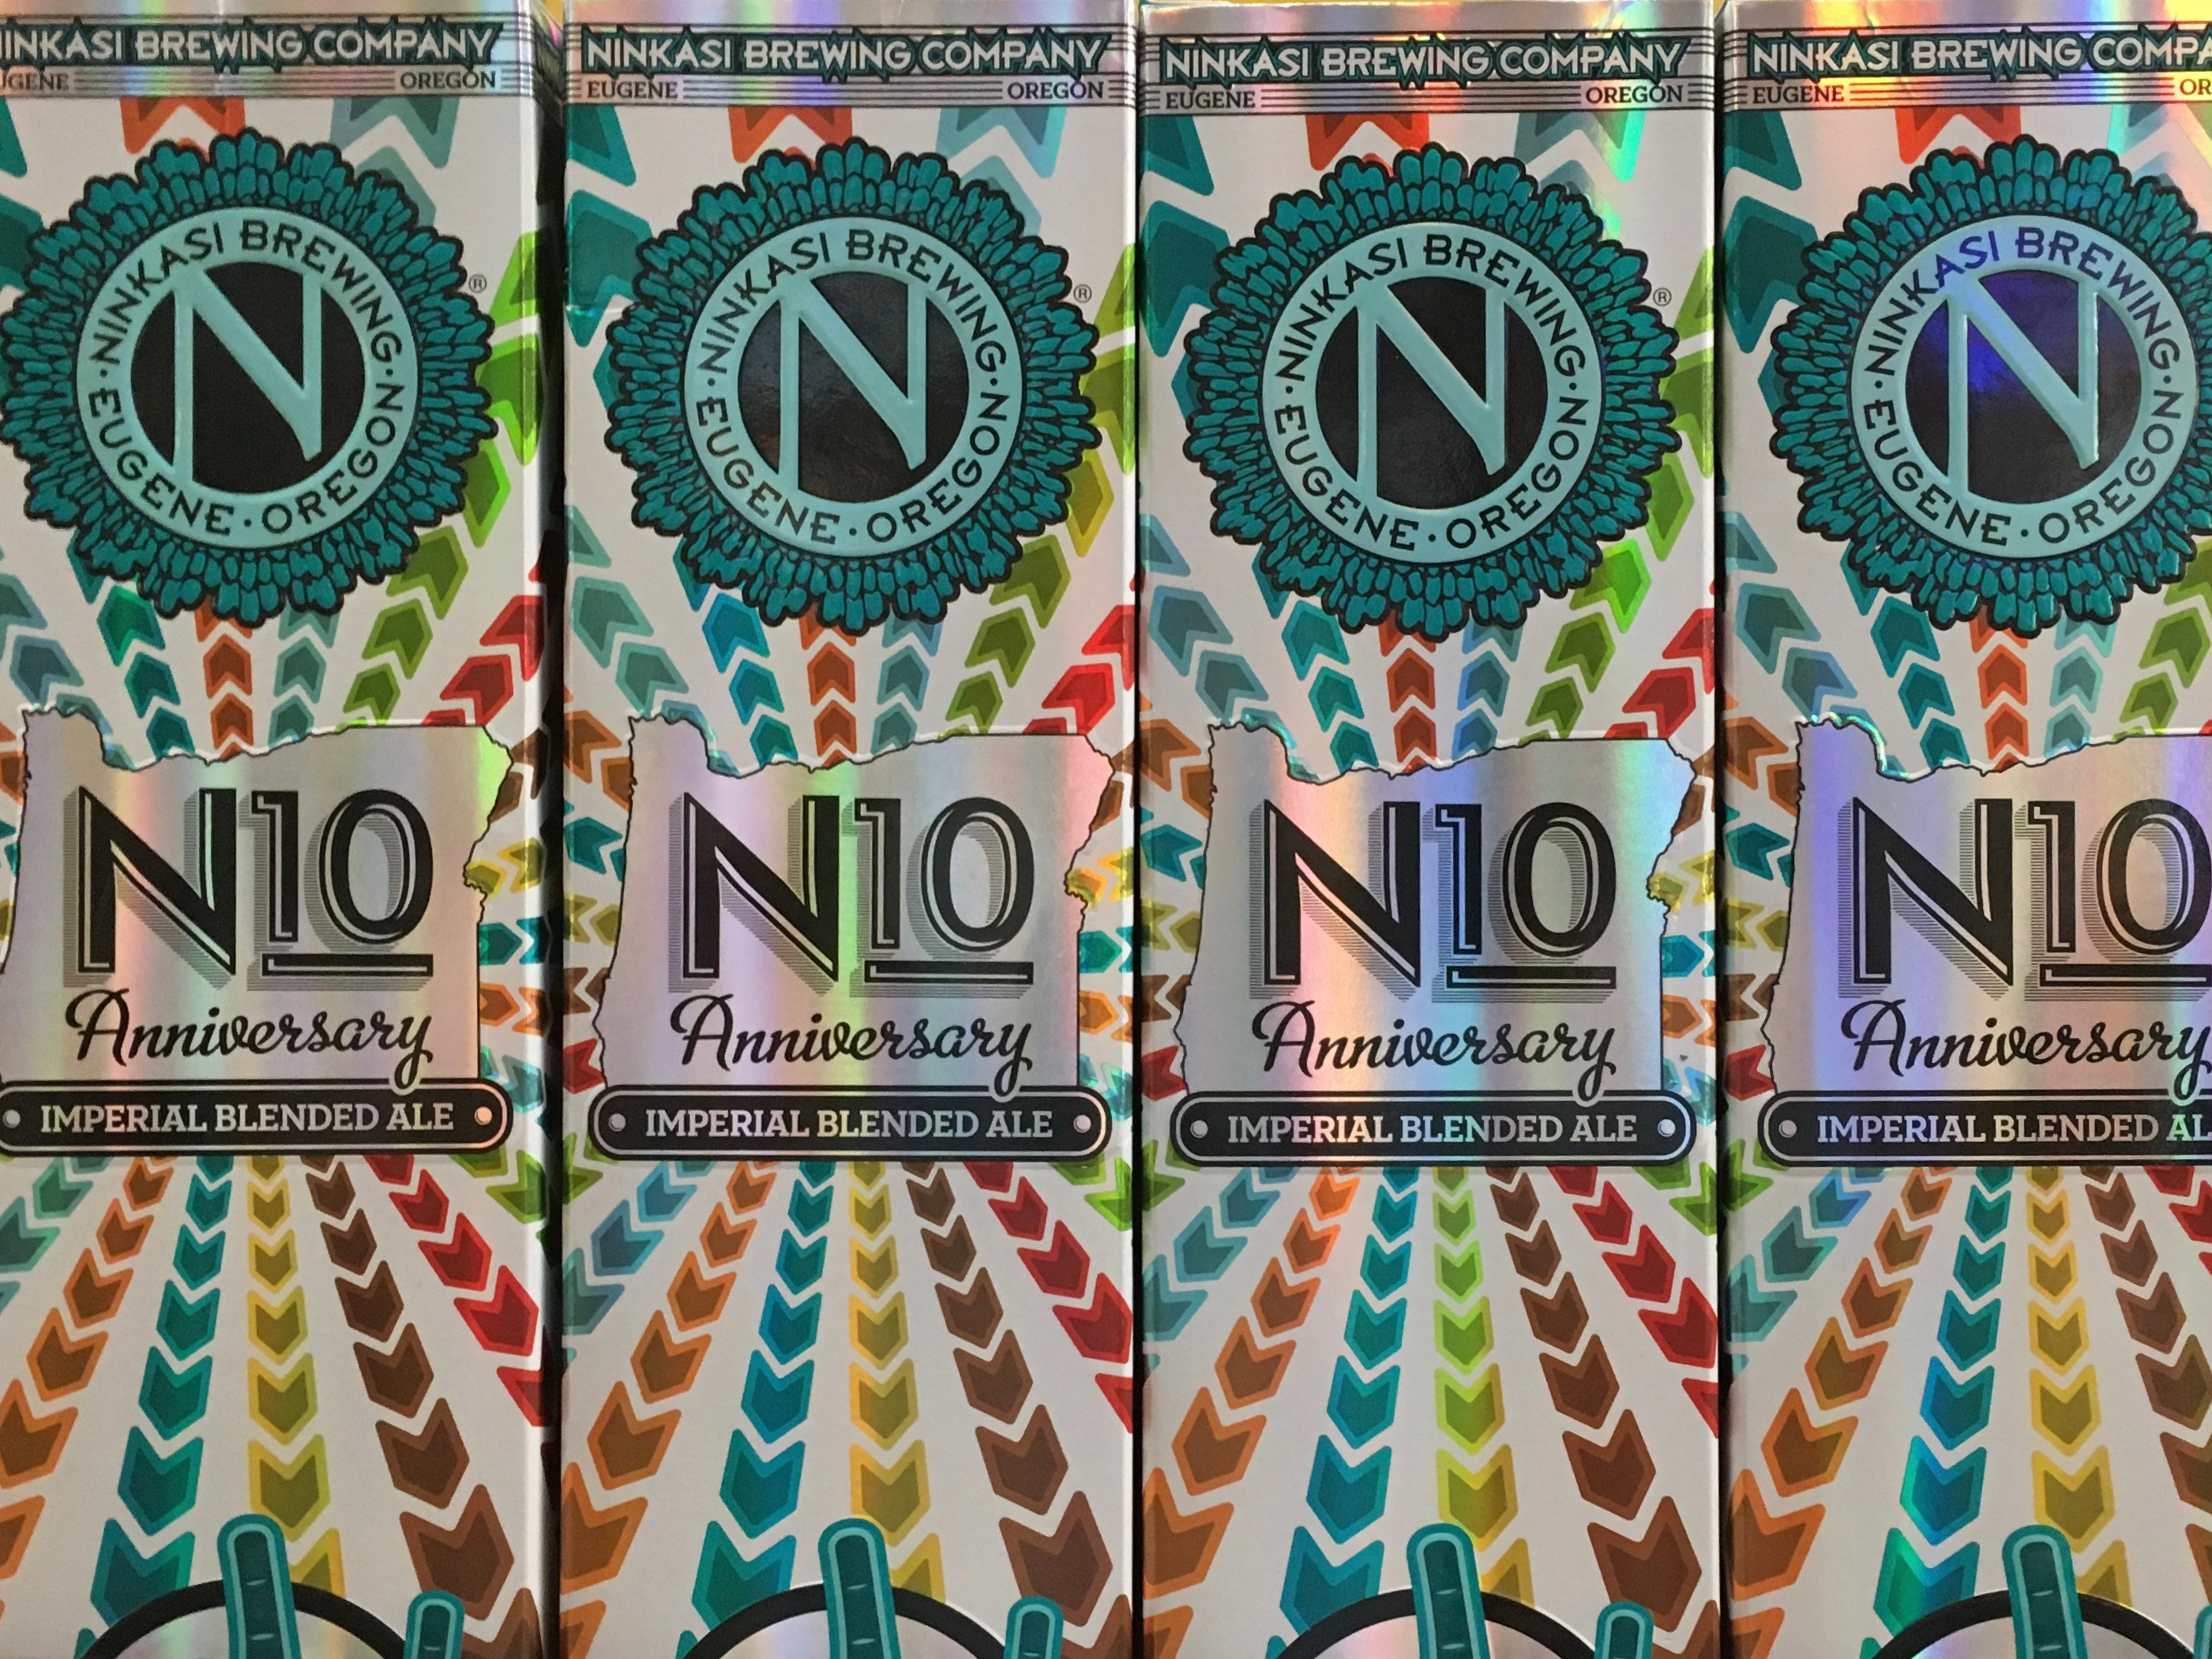 N10 packaging celebrating 10 Years of brewing at Ninkasi Brewing.